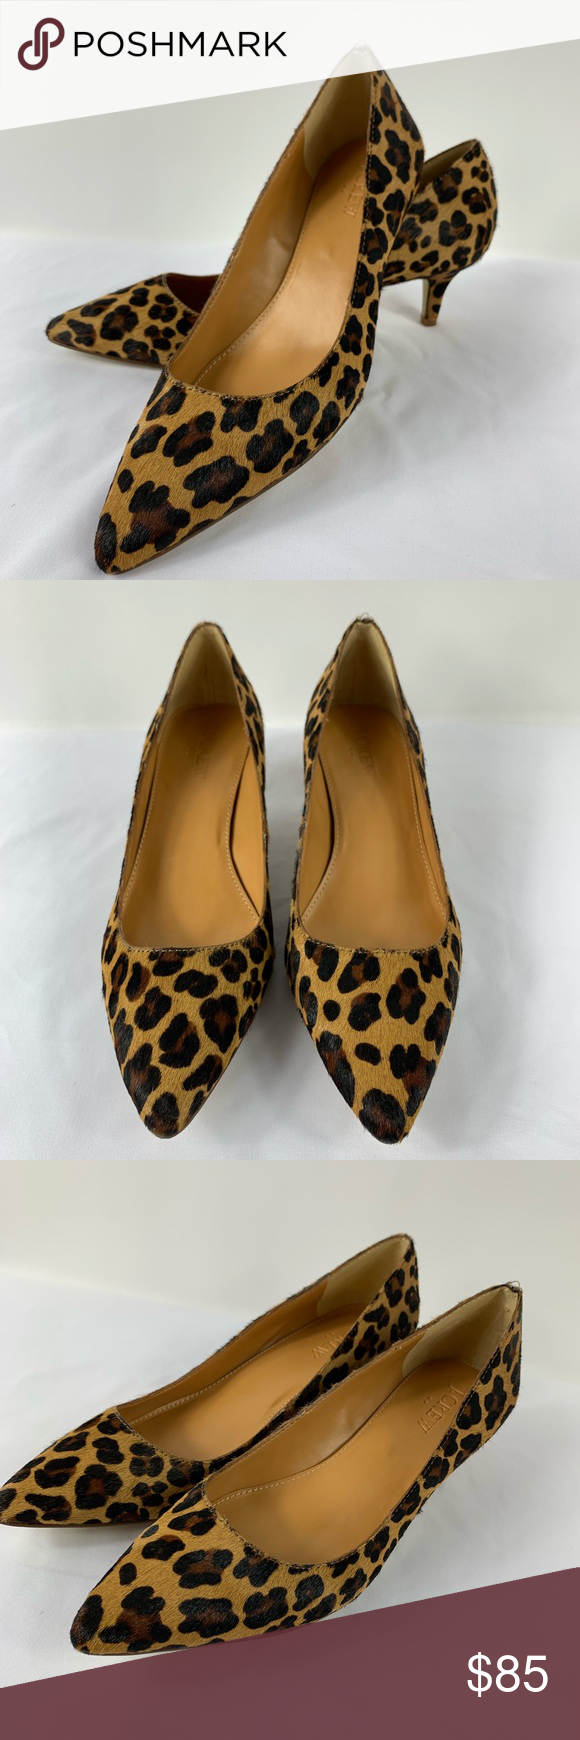 73308fa3d6a9 J Crew Dulci Calf Hair Leopard Kitten Heels Sz 7 Like new condition animal  print shoes. Last picture shows a miss stitch. J. Crew Shoes Heels